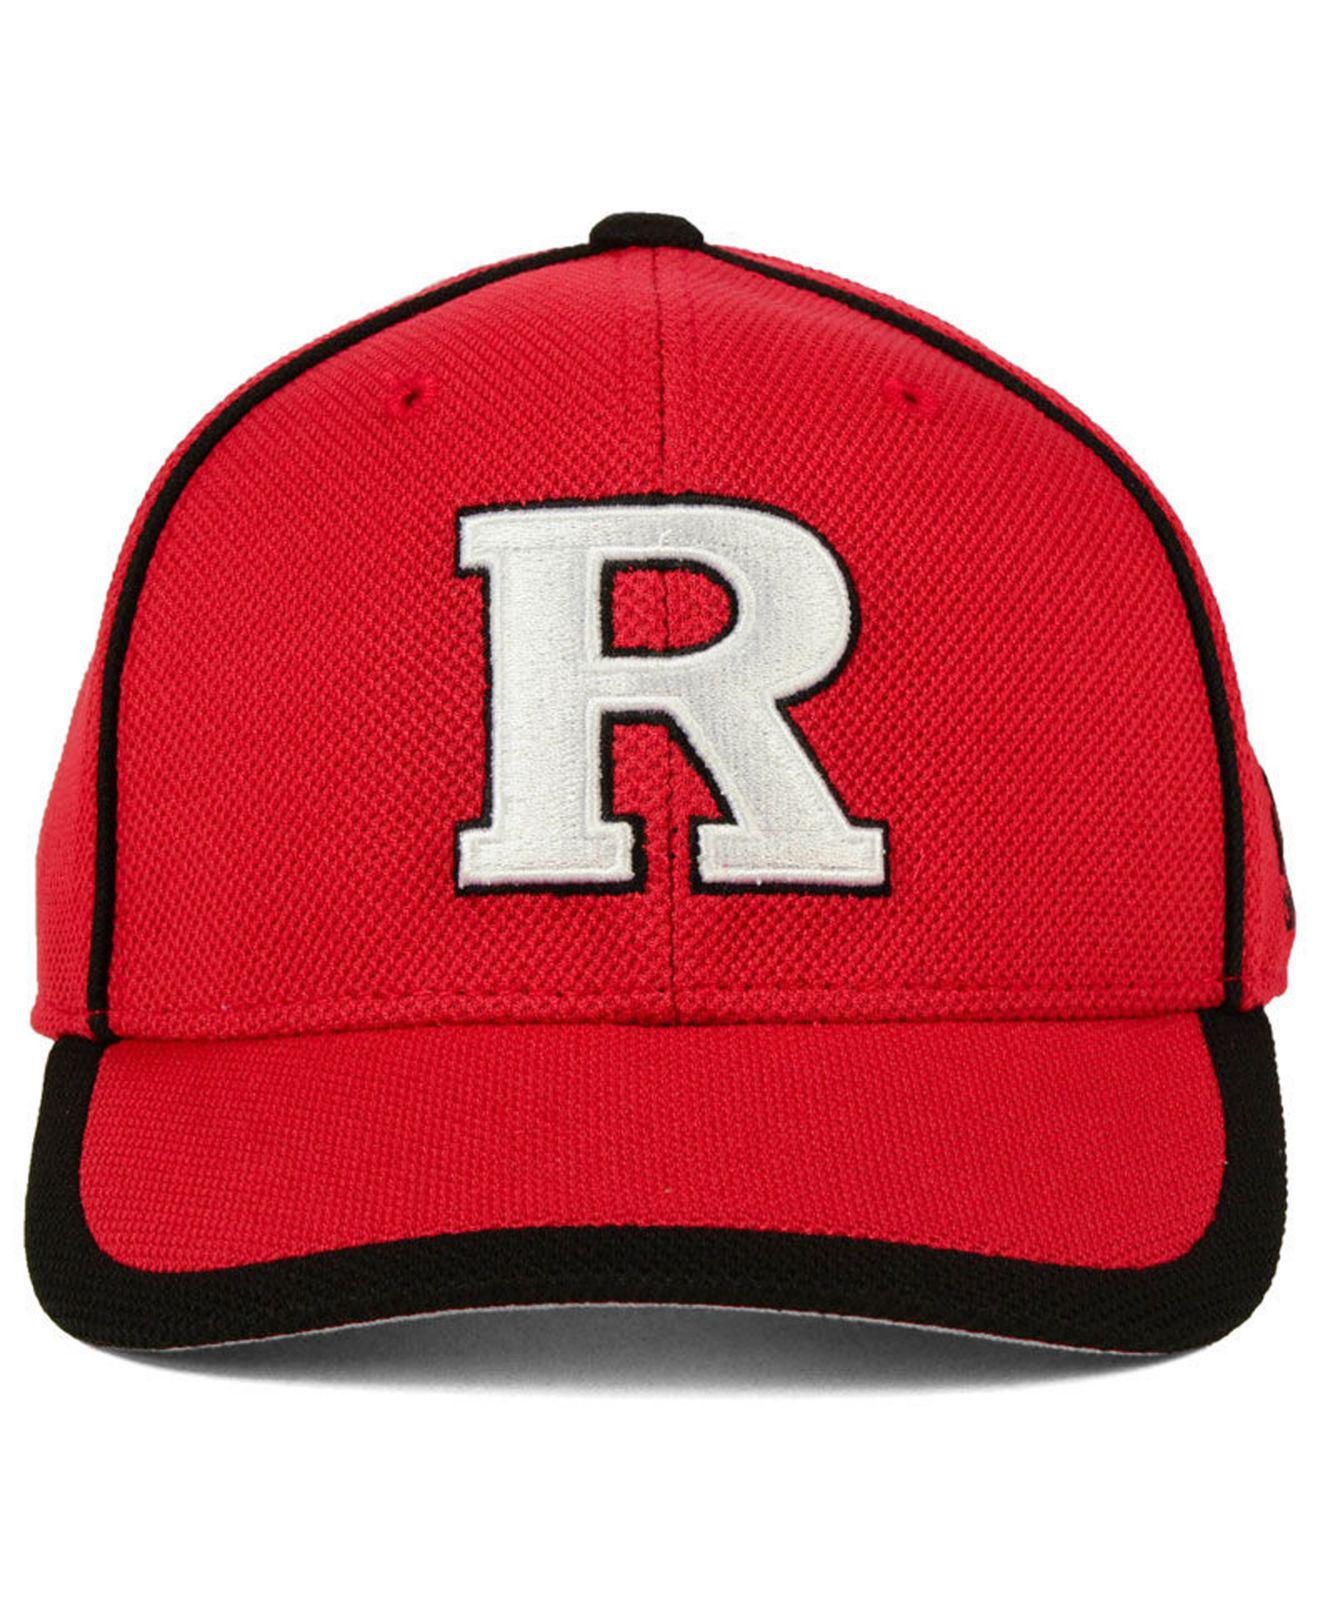 best service e8137 03c10 ... amazon lyst adidas rutgers scarlet knights piping hot adjustable cap in  red for men 2efe4 91a40